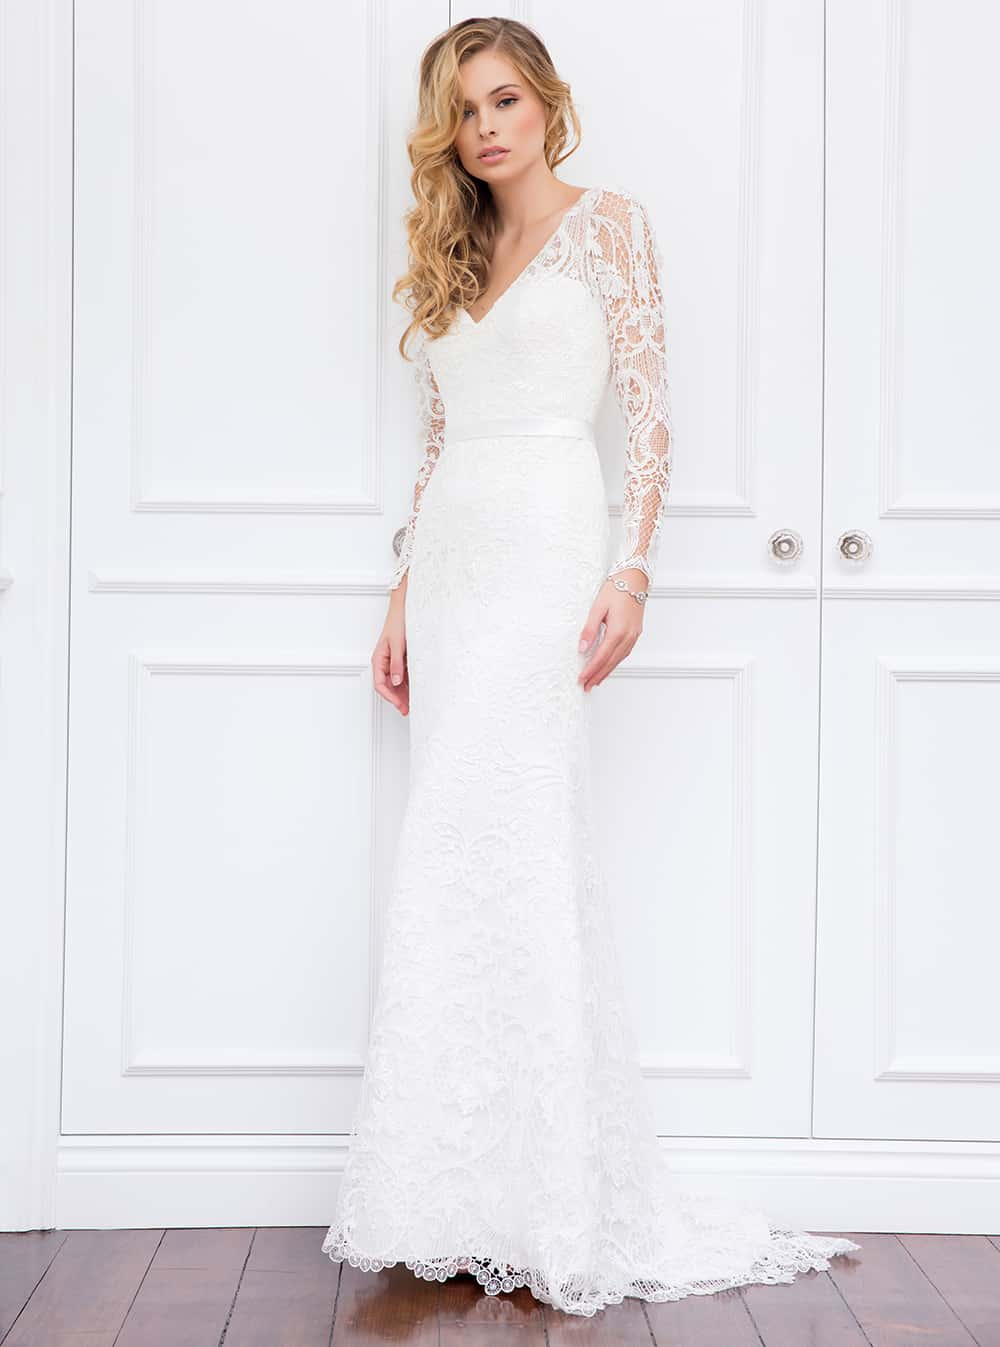 The Jasmin wedding gown with lace sheer sleeve and short train from Wendy Makin Couture.